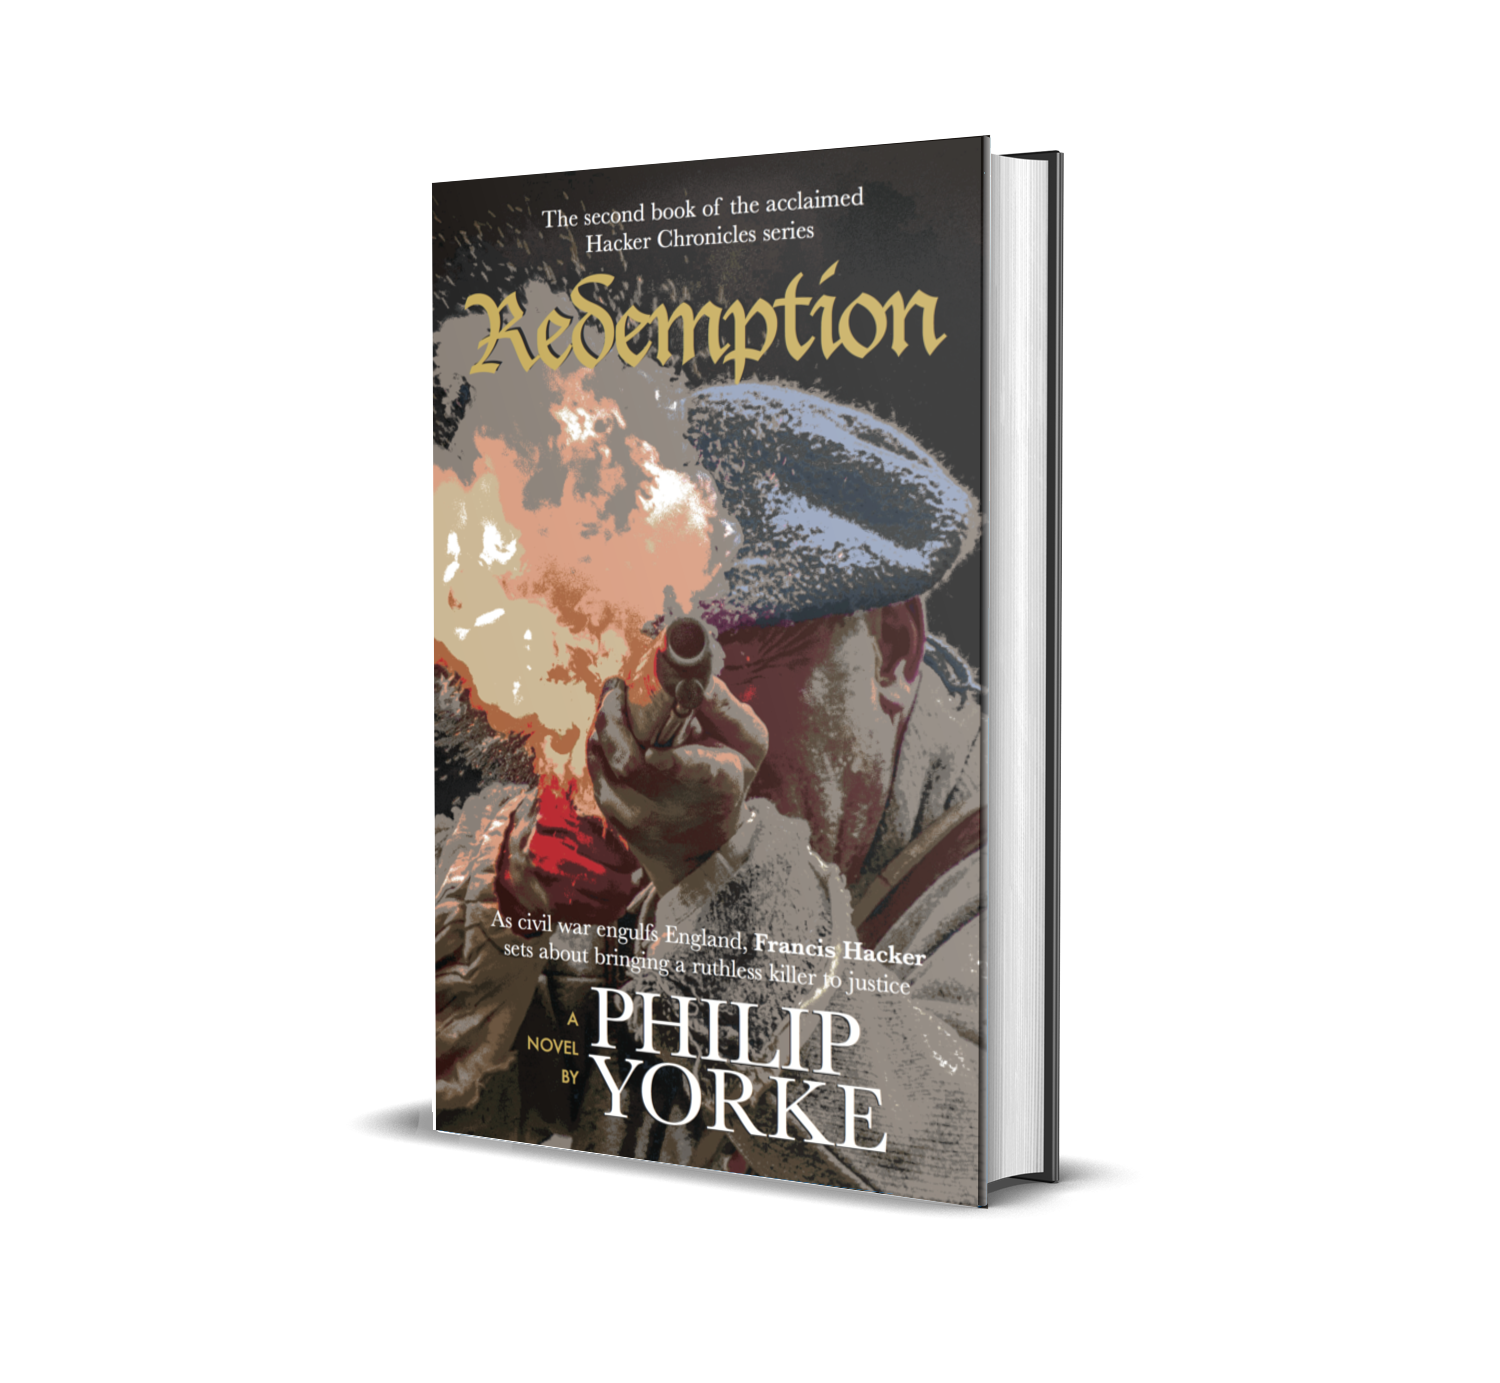 Pre-order your signed copy of Redemption